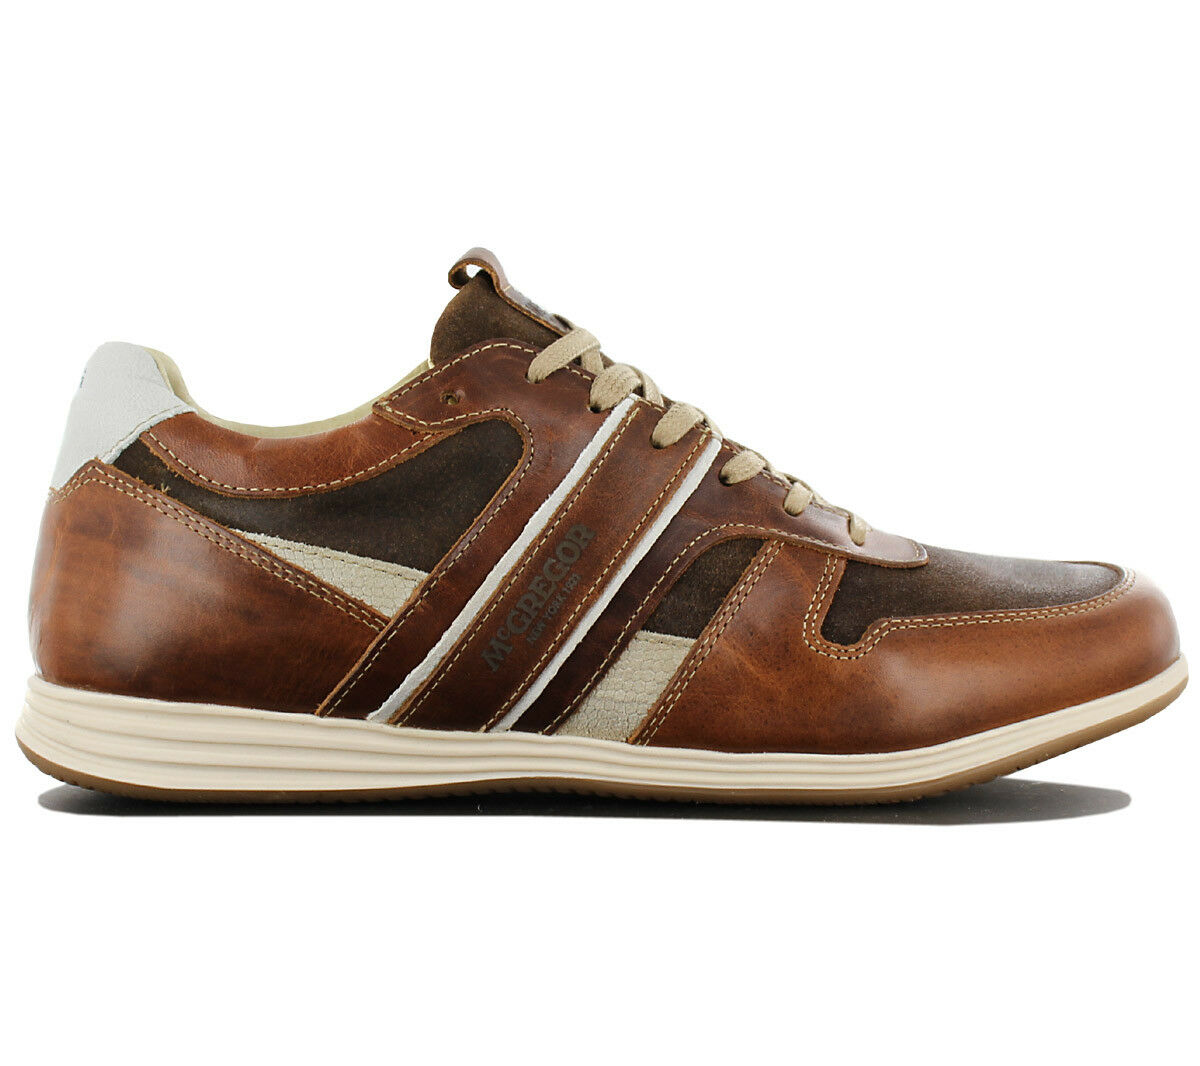 McGregor New York Williams leather chaussures hommes cuir basses mg9060181160